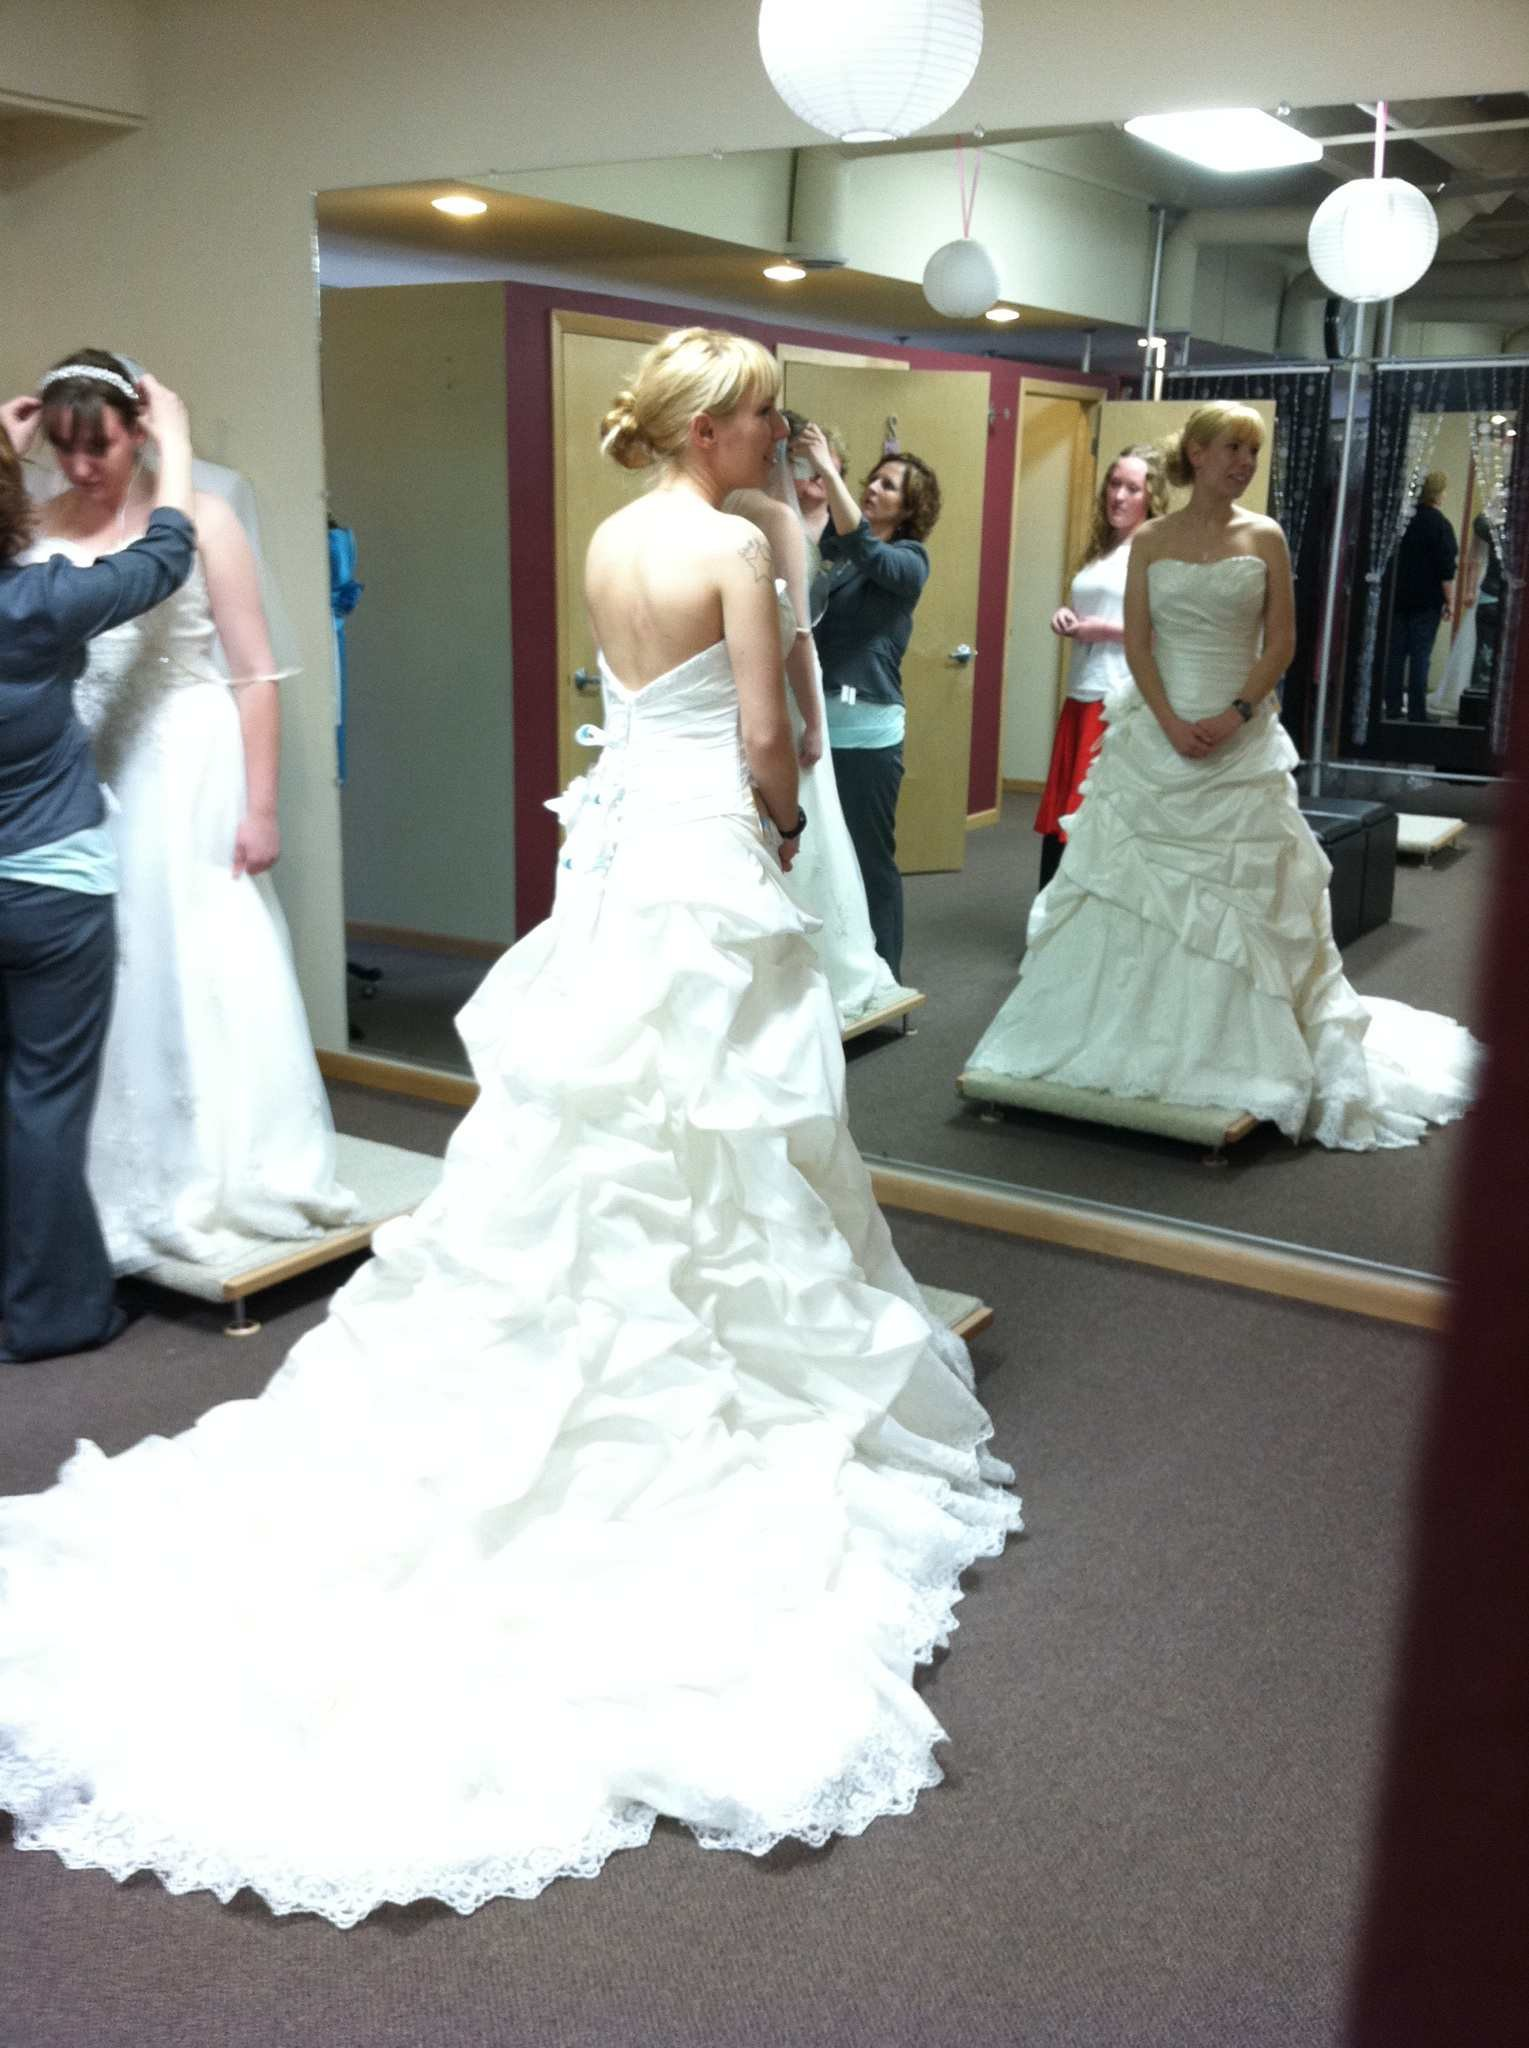 Military brides thanked with free wedding gowns wqow tv for Free wedding dresses for military brides